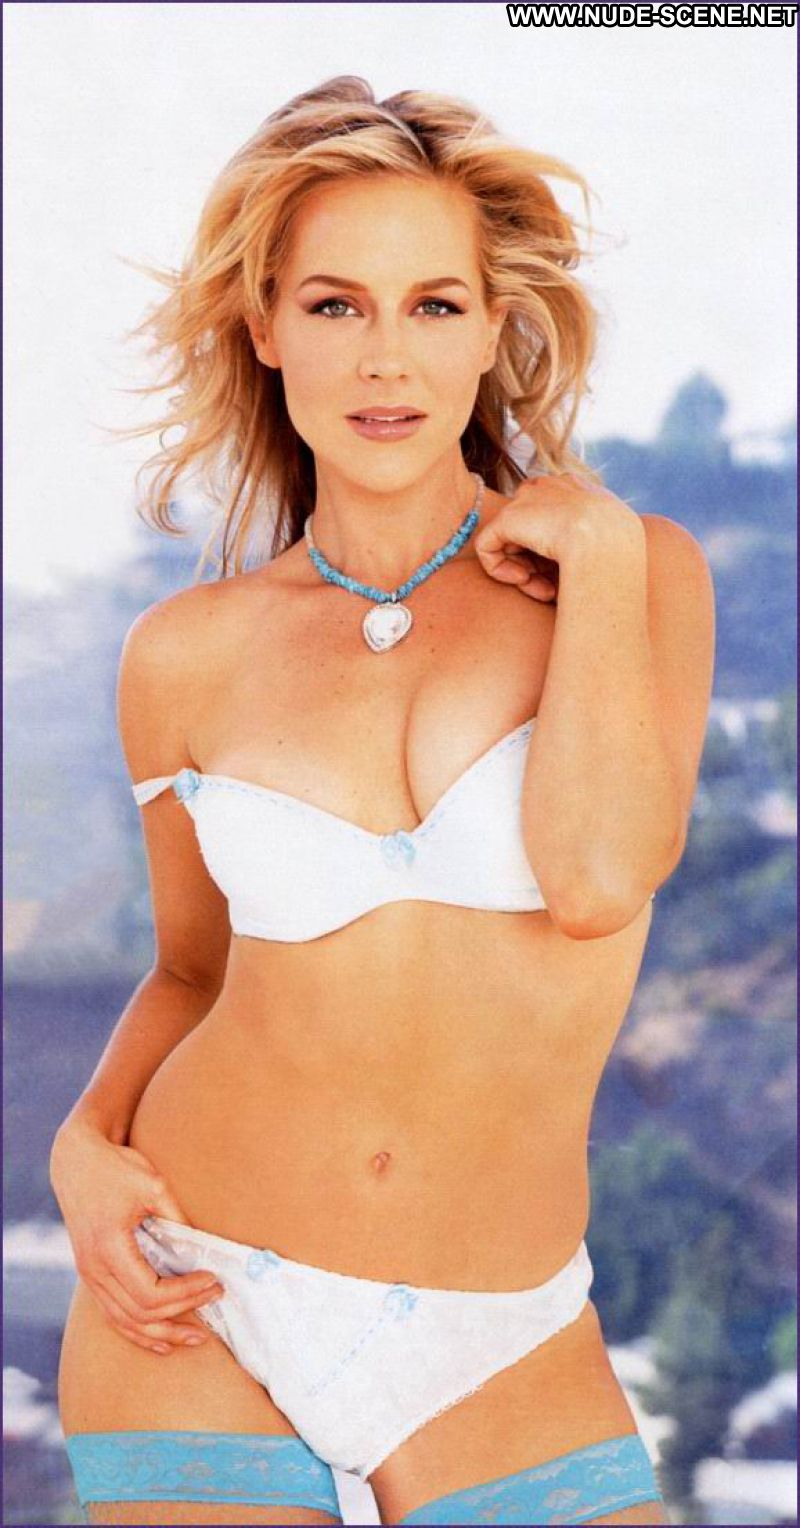 julie benz hot bikini